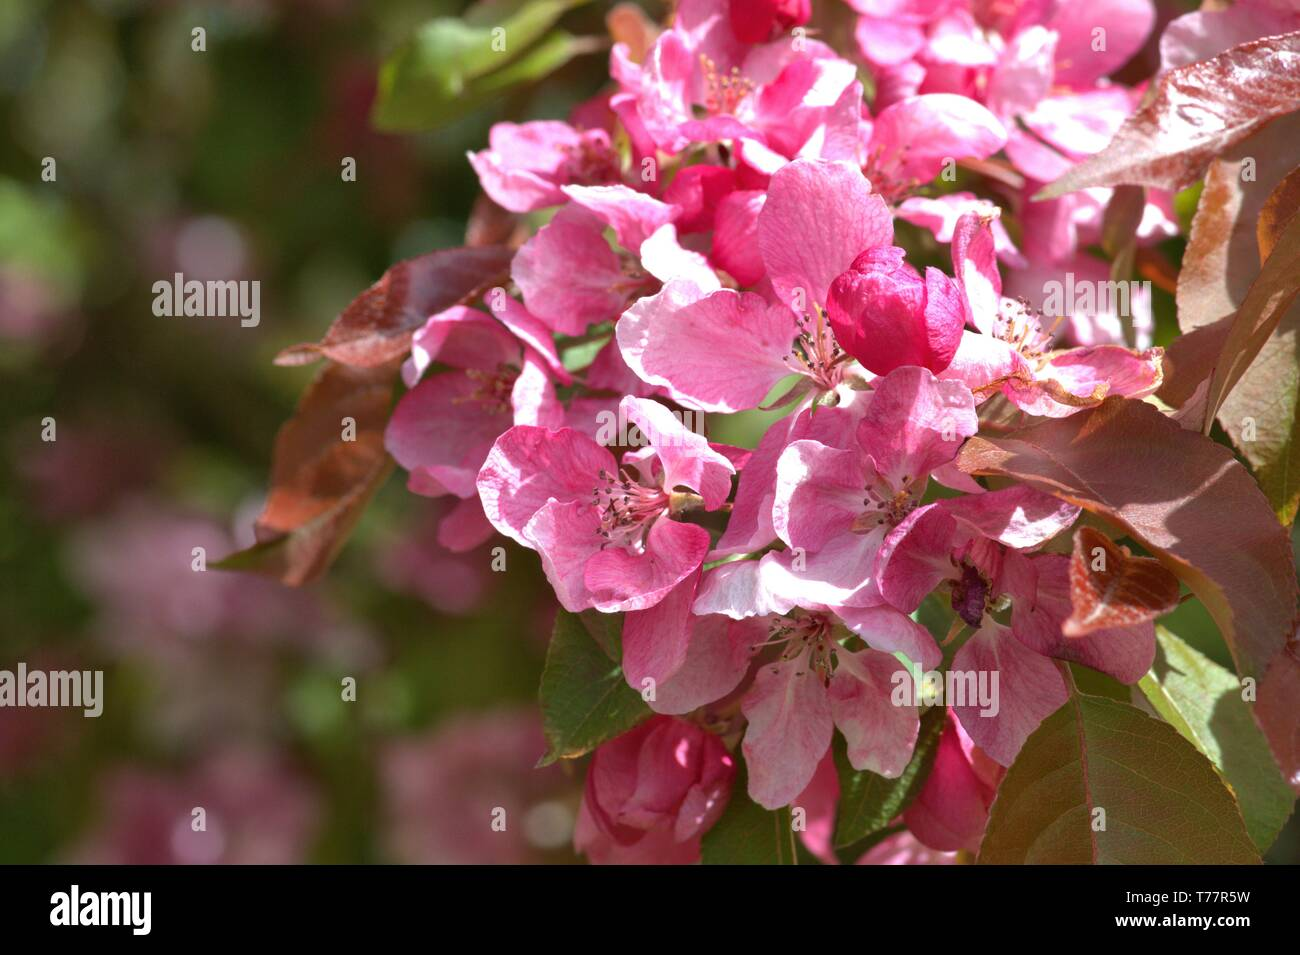 05.05.2019, Schleswig-Holstein, Schleswig: Detail of a flowering ornamental apple Rudolph, Malus Rudolph on a public estate in Schleswig. Order: rose-like (Rosales), family: rose-growing (Rosaceae), tribe: pyreae, sub-tribe: pome-fruit waxes (Pyrinae), genus: apple   usage worldwide - Stock Image